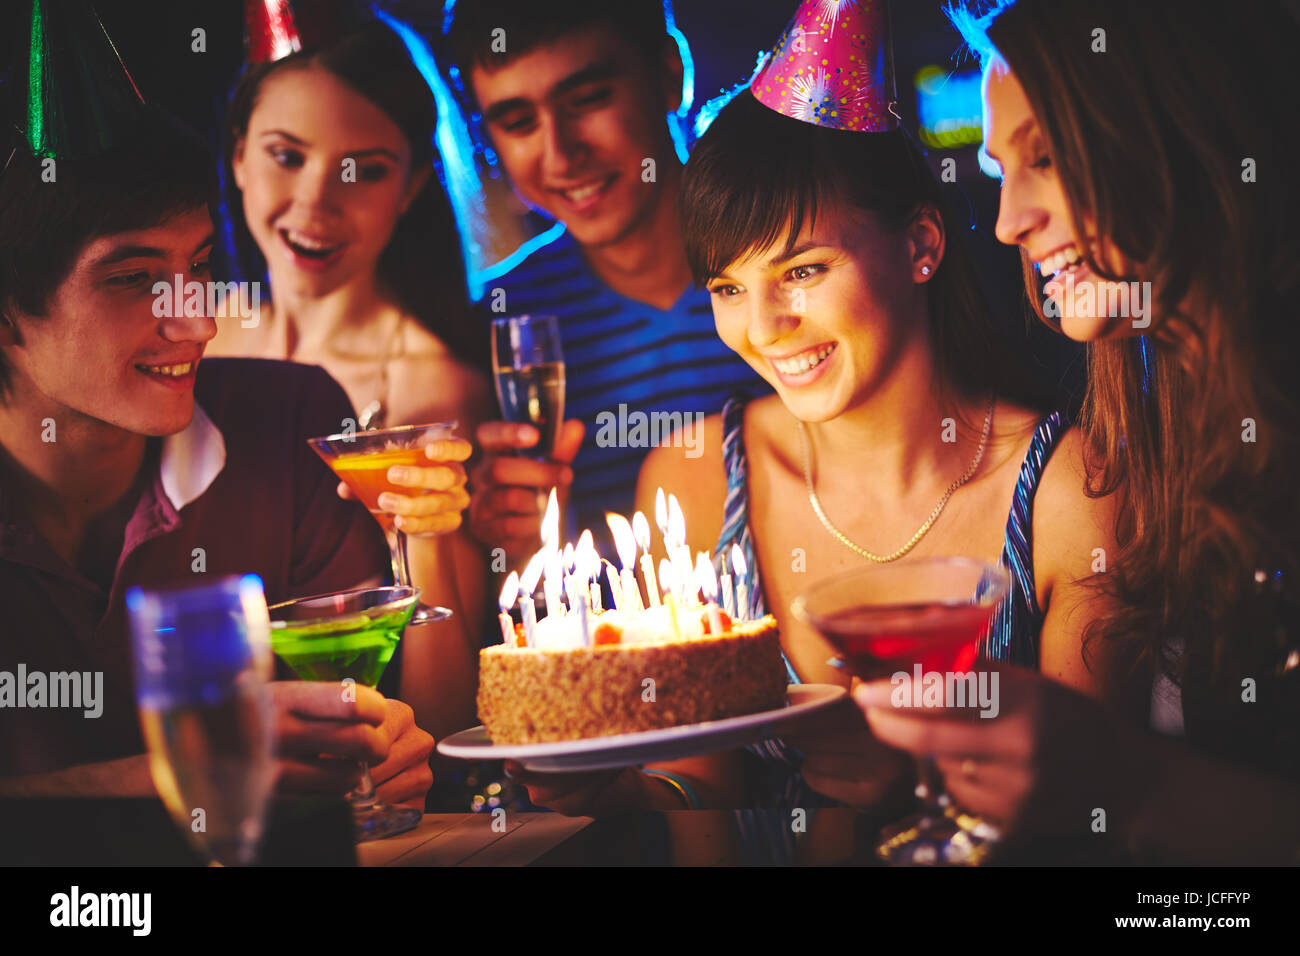 Charmed Girl Looking At Birthday Cake With Burning Candles At Party